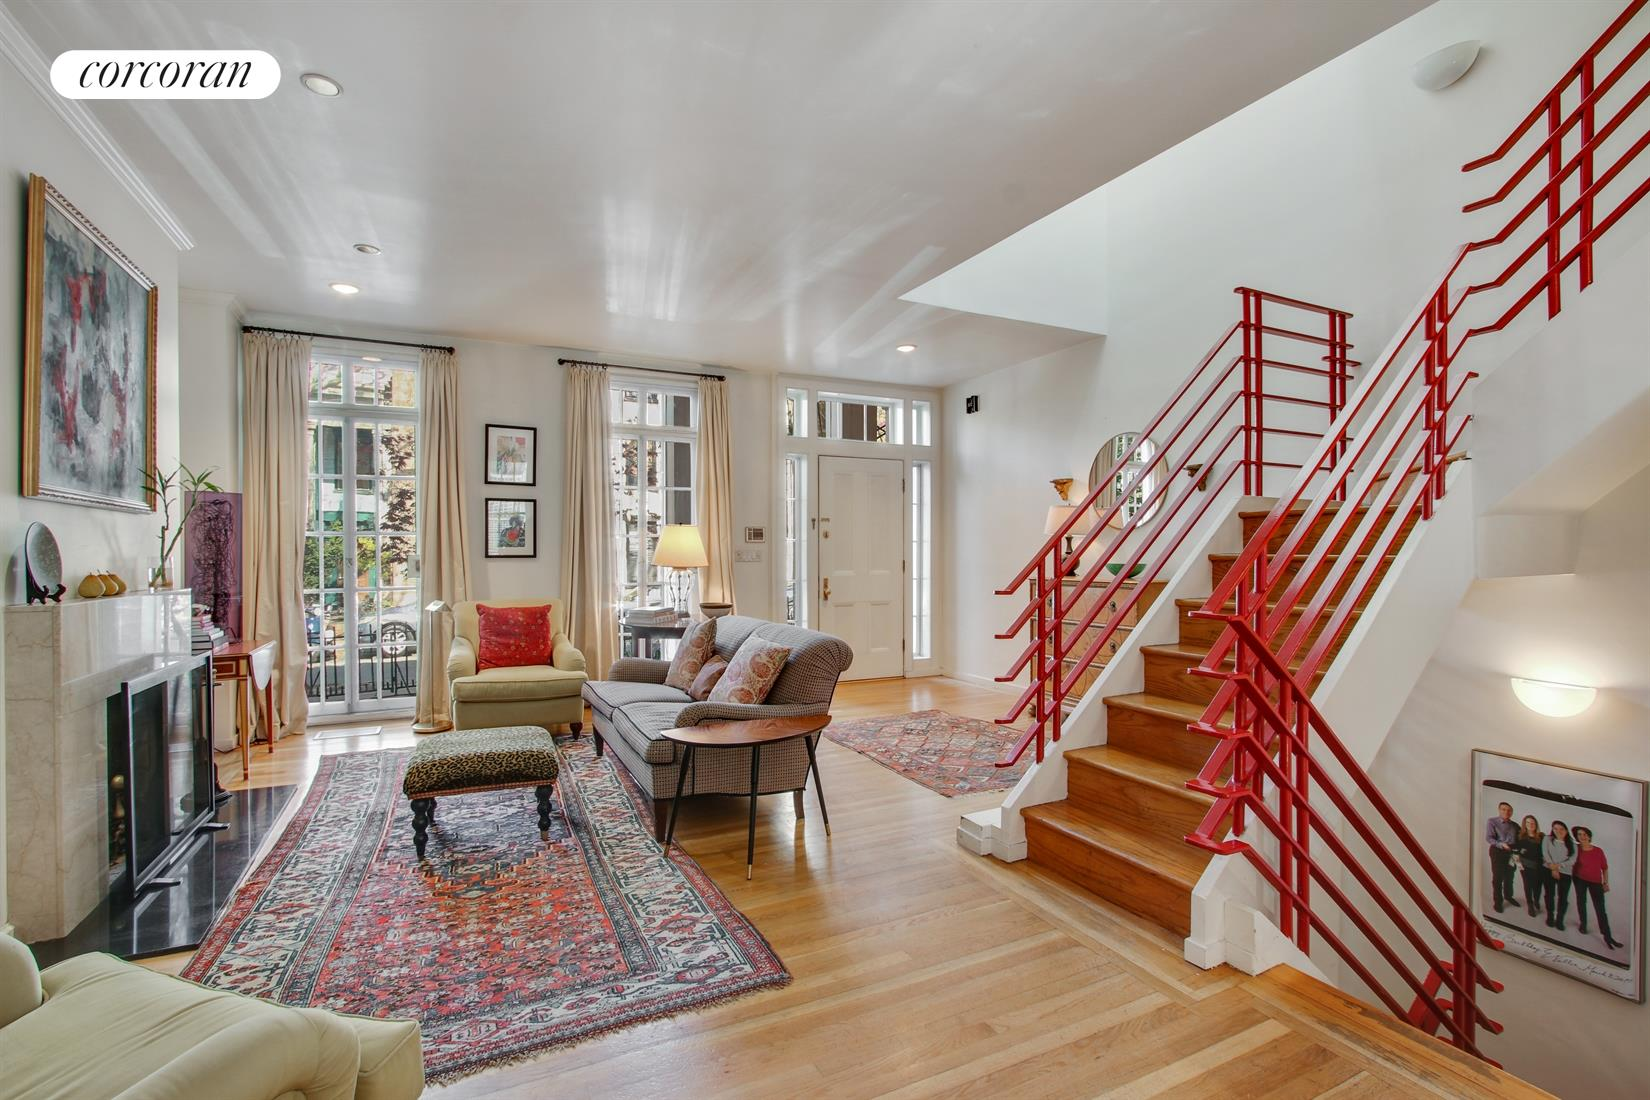 Corcoran, 45 Willow Place, Brooklyn Heights Real Estate